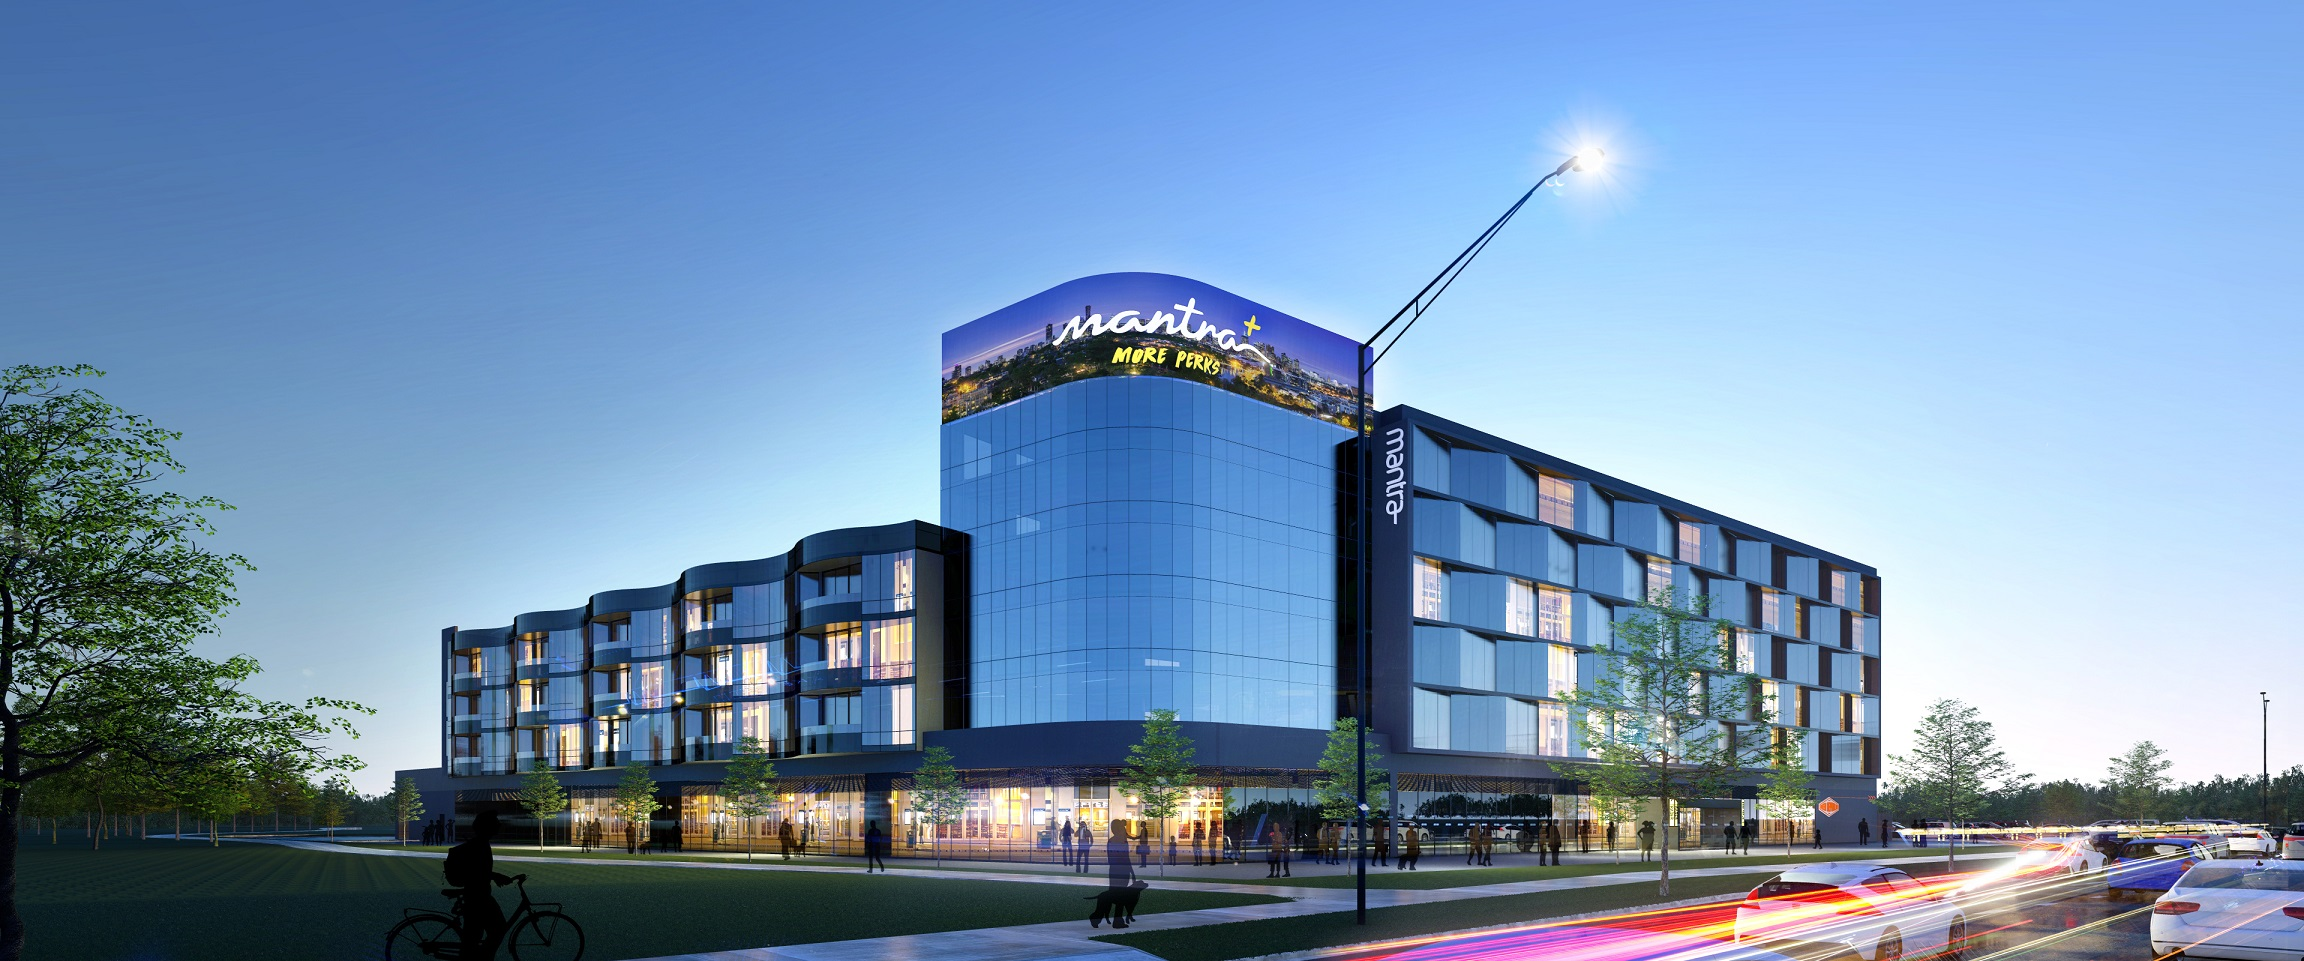 Mantra Epping, a new-build $80 million hotel development in Melbourne's booming north, is on track to open in May 2019.